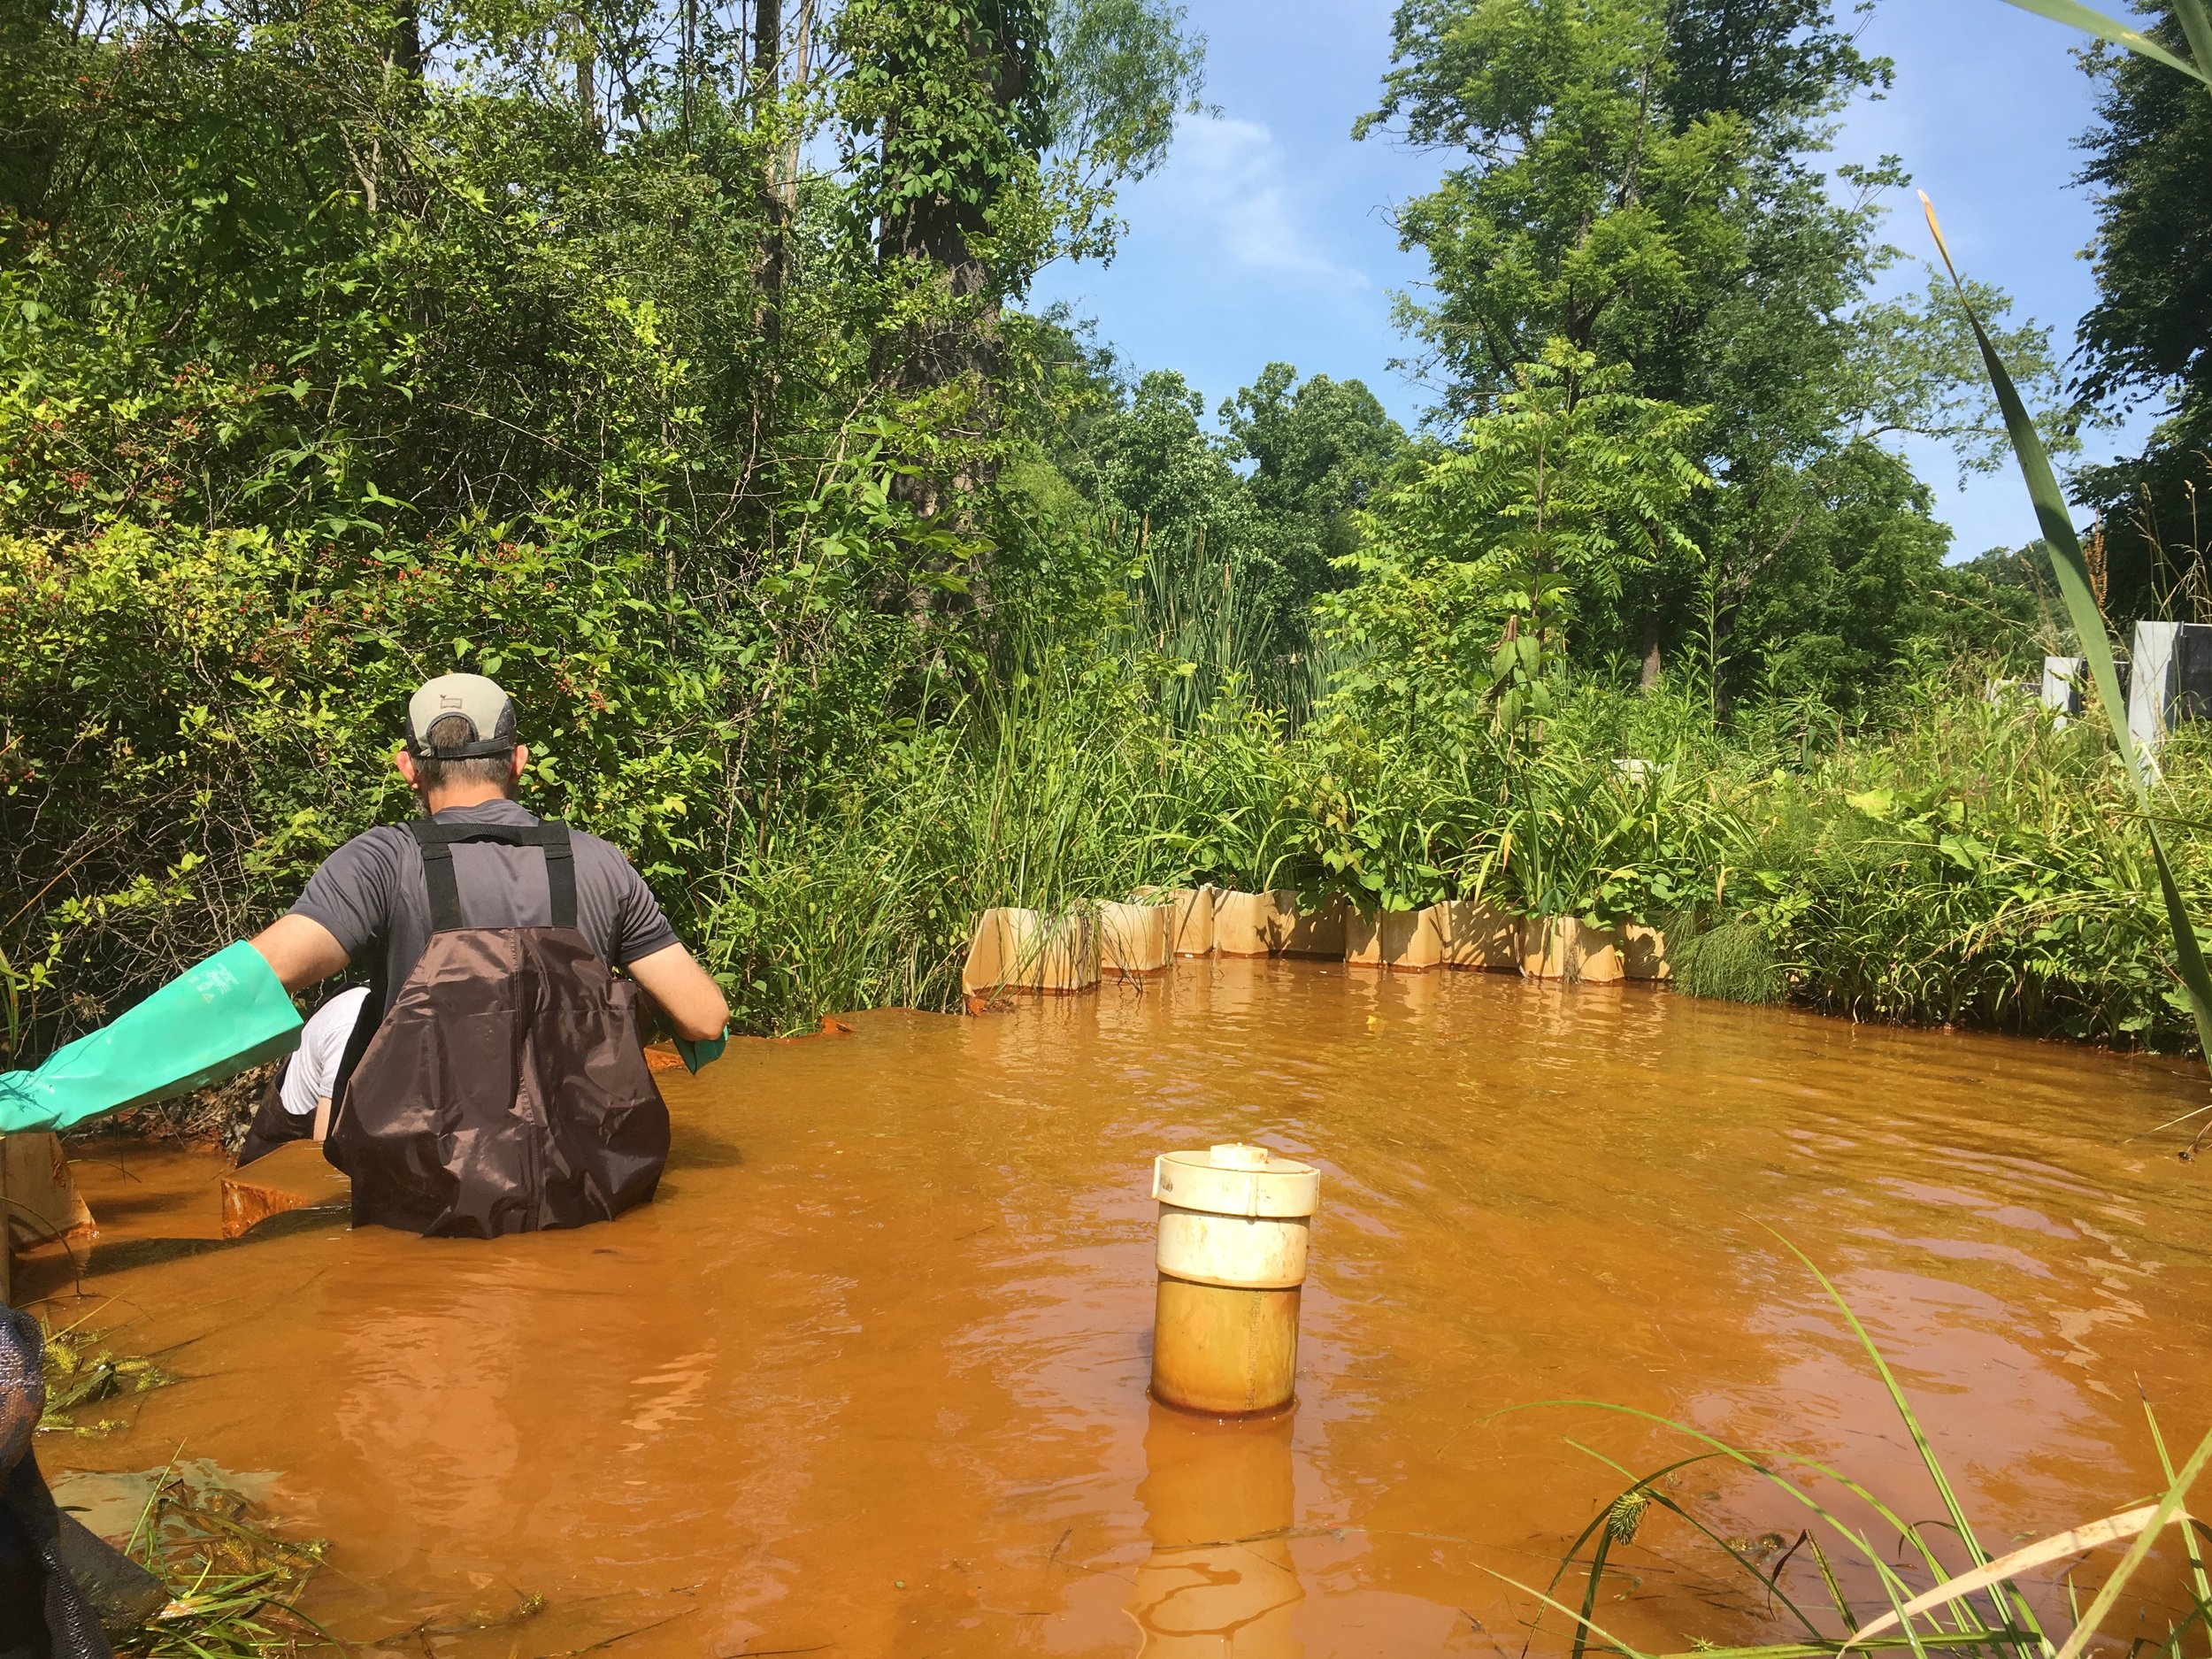 Extracting samples from stream catch of iron and acid mine drainage in Sulfur Springs Hollow, Ohio